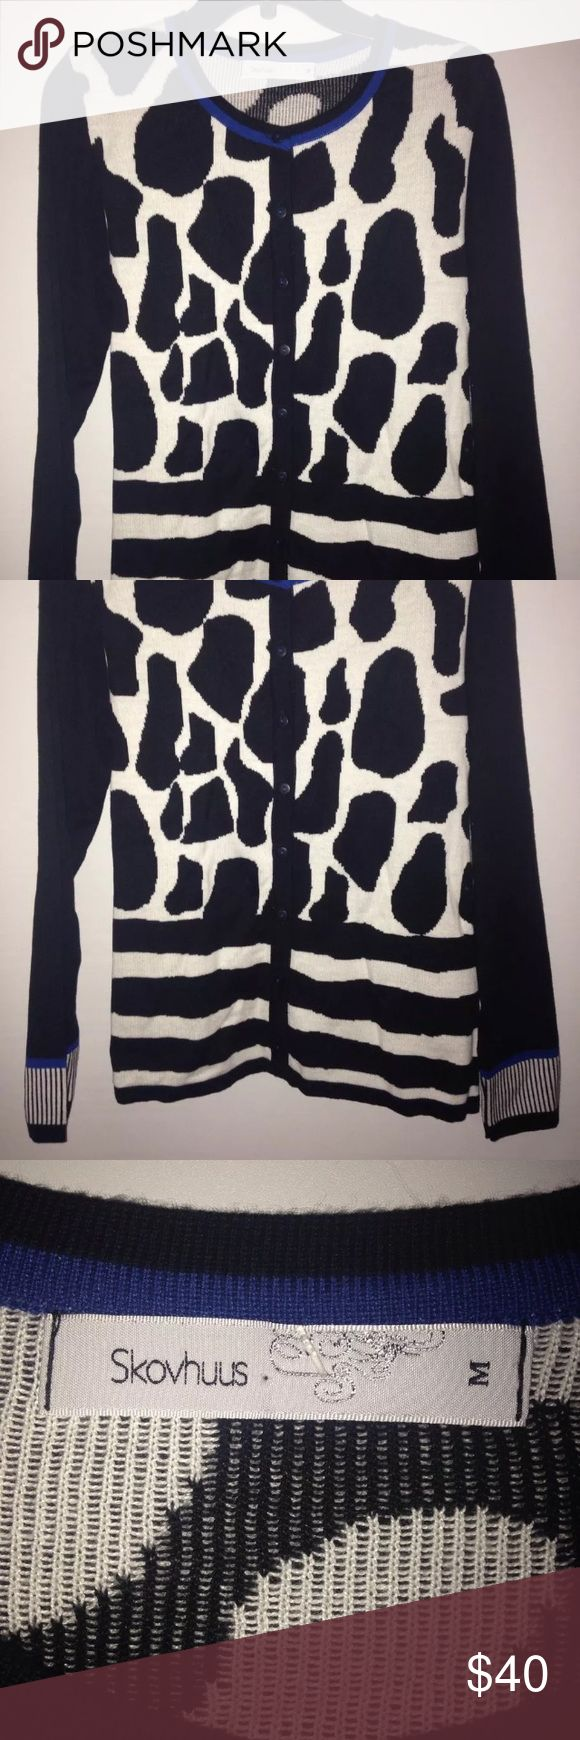 BLACK WHITE ANIMAL PRINT CARDIGAN SWEATER NEW WITH TAGS  BEAUTIFUL SKOVHUUS STRIPED ANIMAL PRINT CARDIGAN SWEATER   WOMEN SIZE MEDIUM   THIS CARDIGAN WAS PURCHASED AT NORDSTROM AND WAS NEVER WORN   SEE PICTURES FOR DETAILS   Contact me if you have any questions skovhuus Sweaters Cardigans